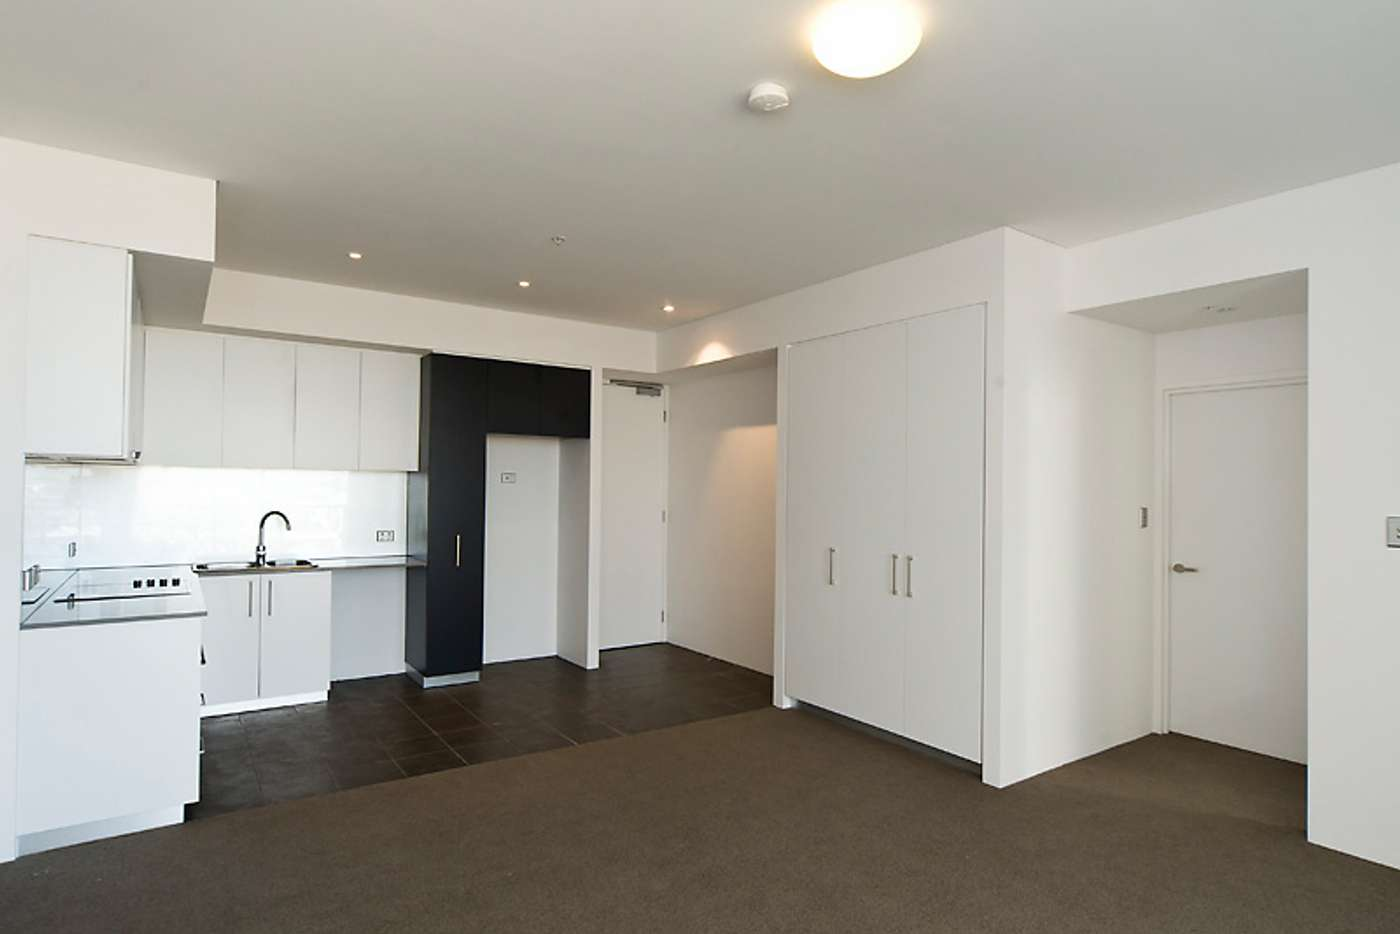 Main view of Homely apartment listing, 82/15 Aberdeen Street, Perth WA 6000